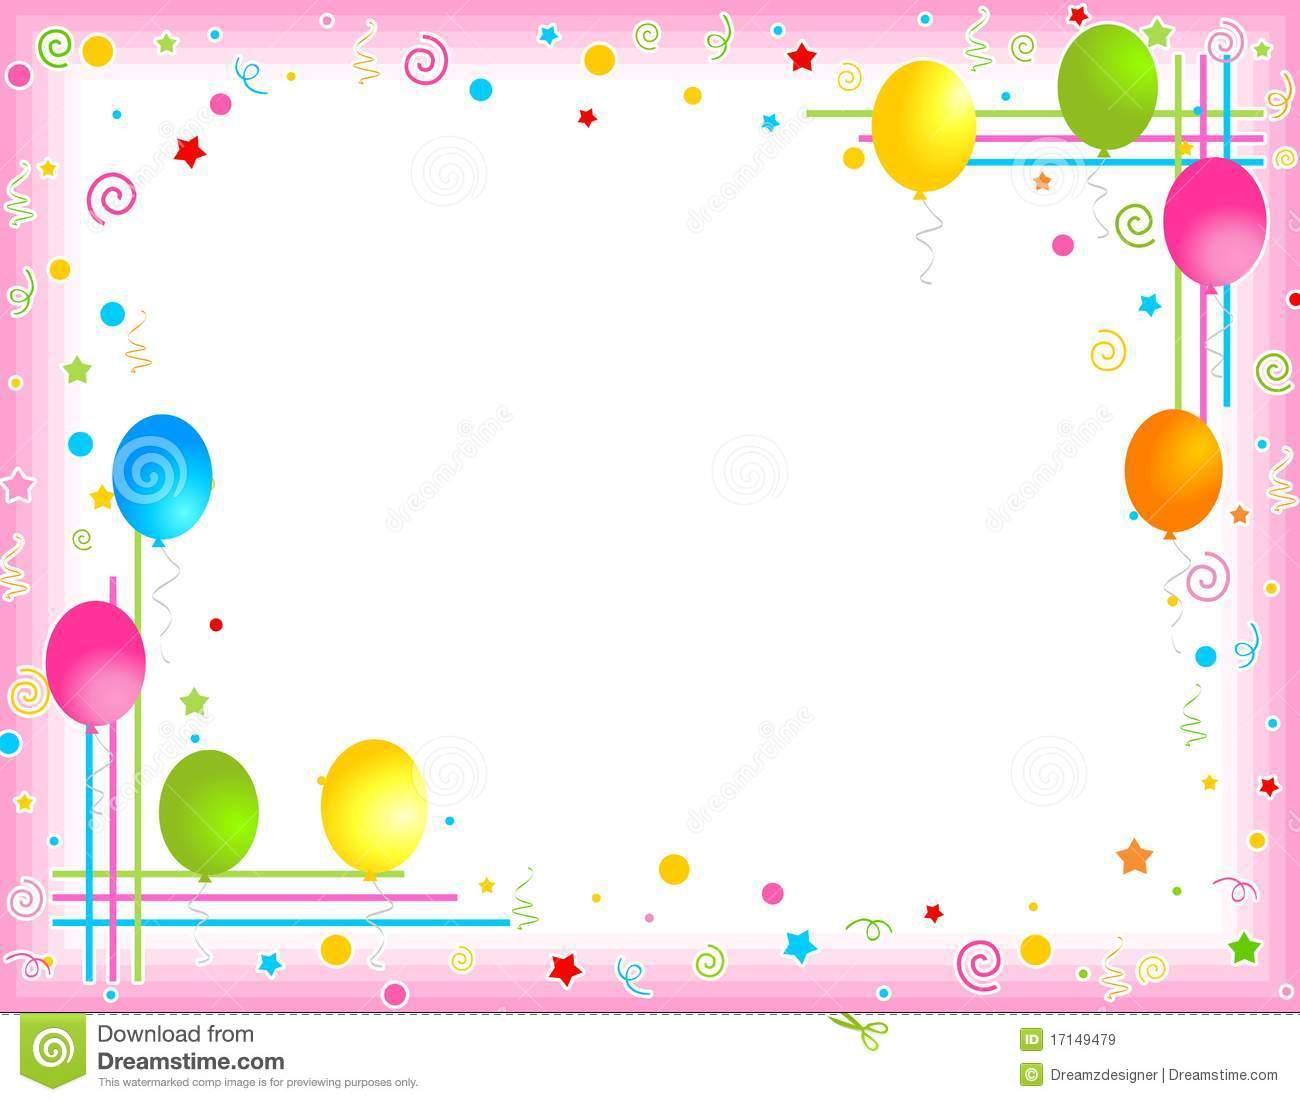 birthday party page borders ; best-party-borders-for-invitations-balloons-border-frame-invitation-card-stock-illustration-image